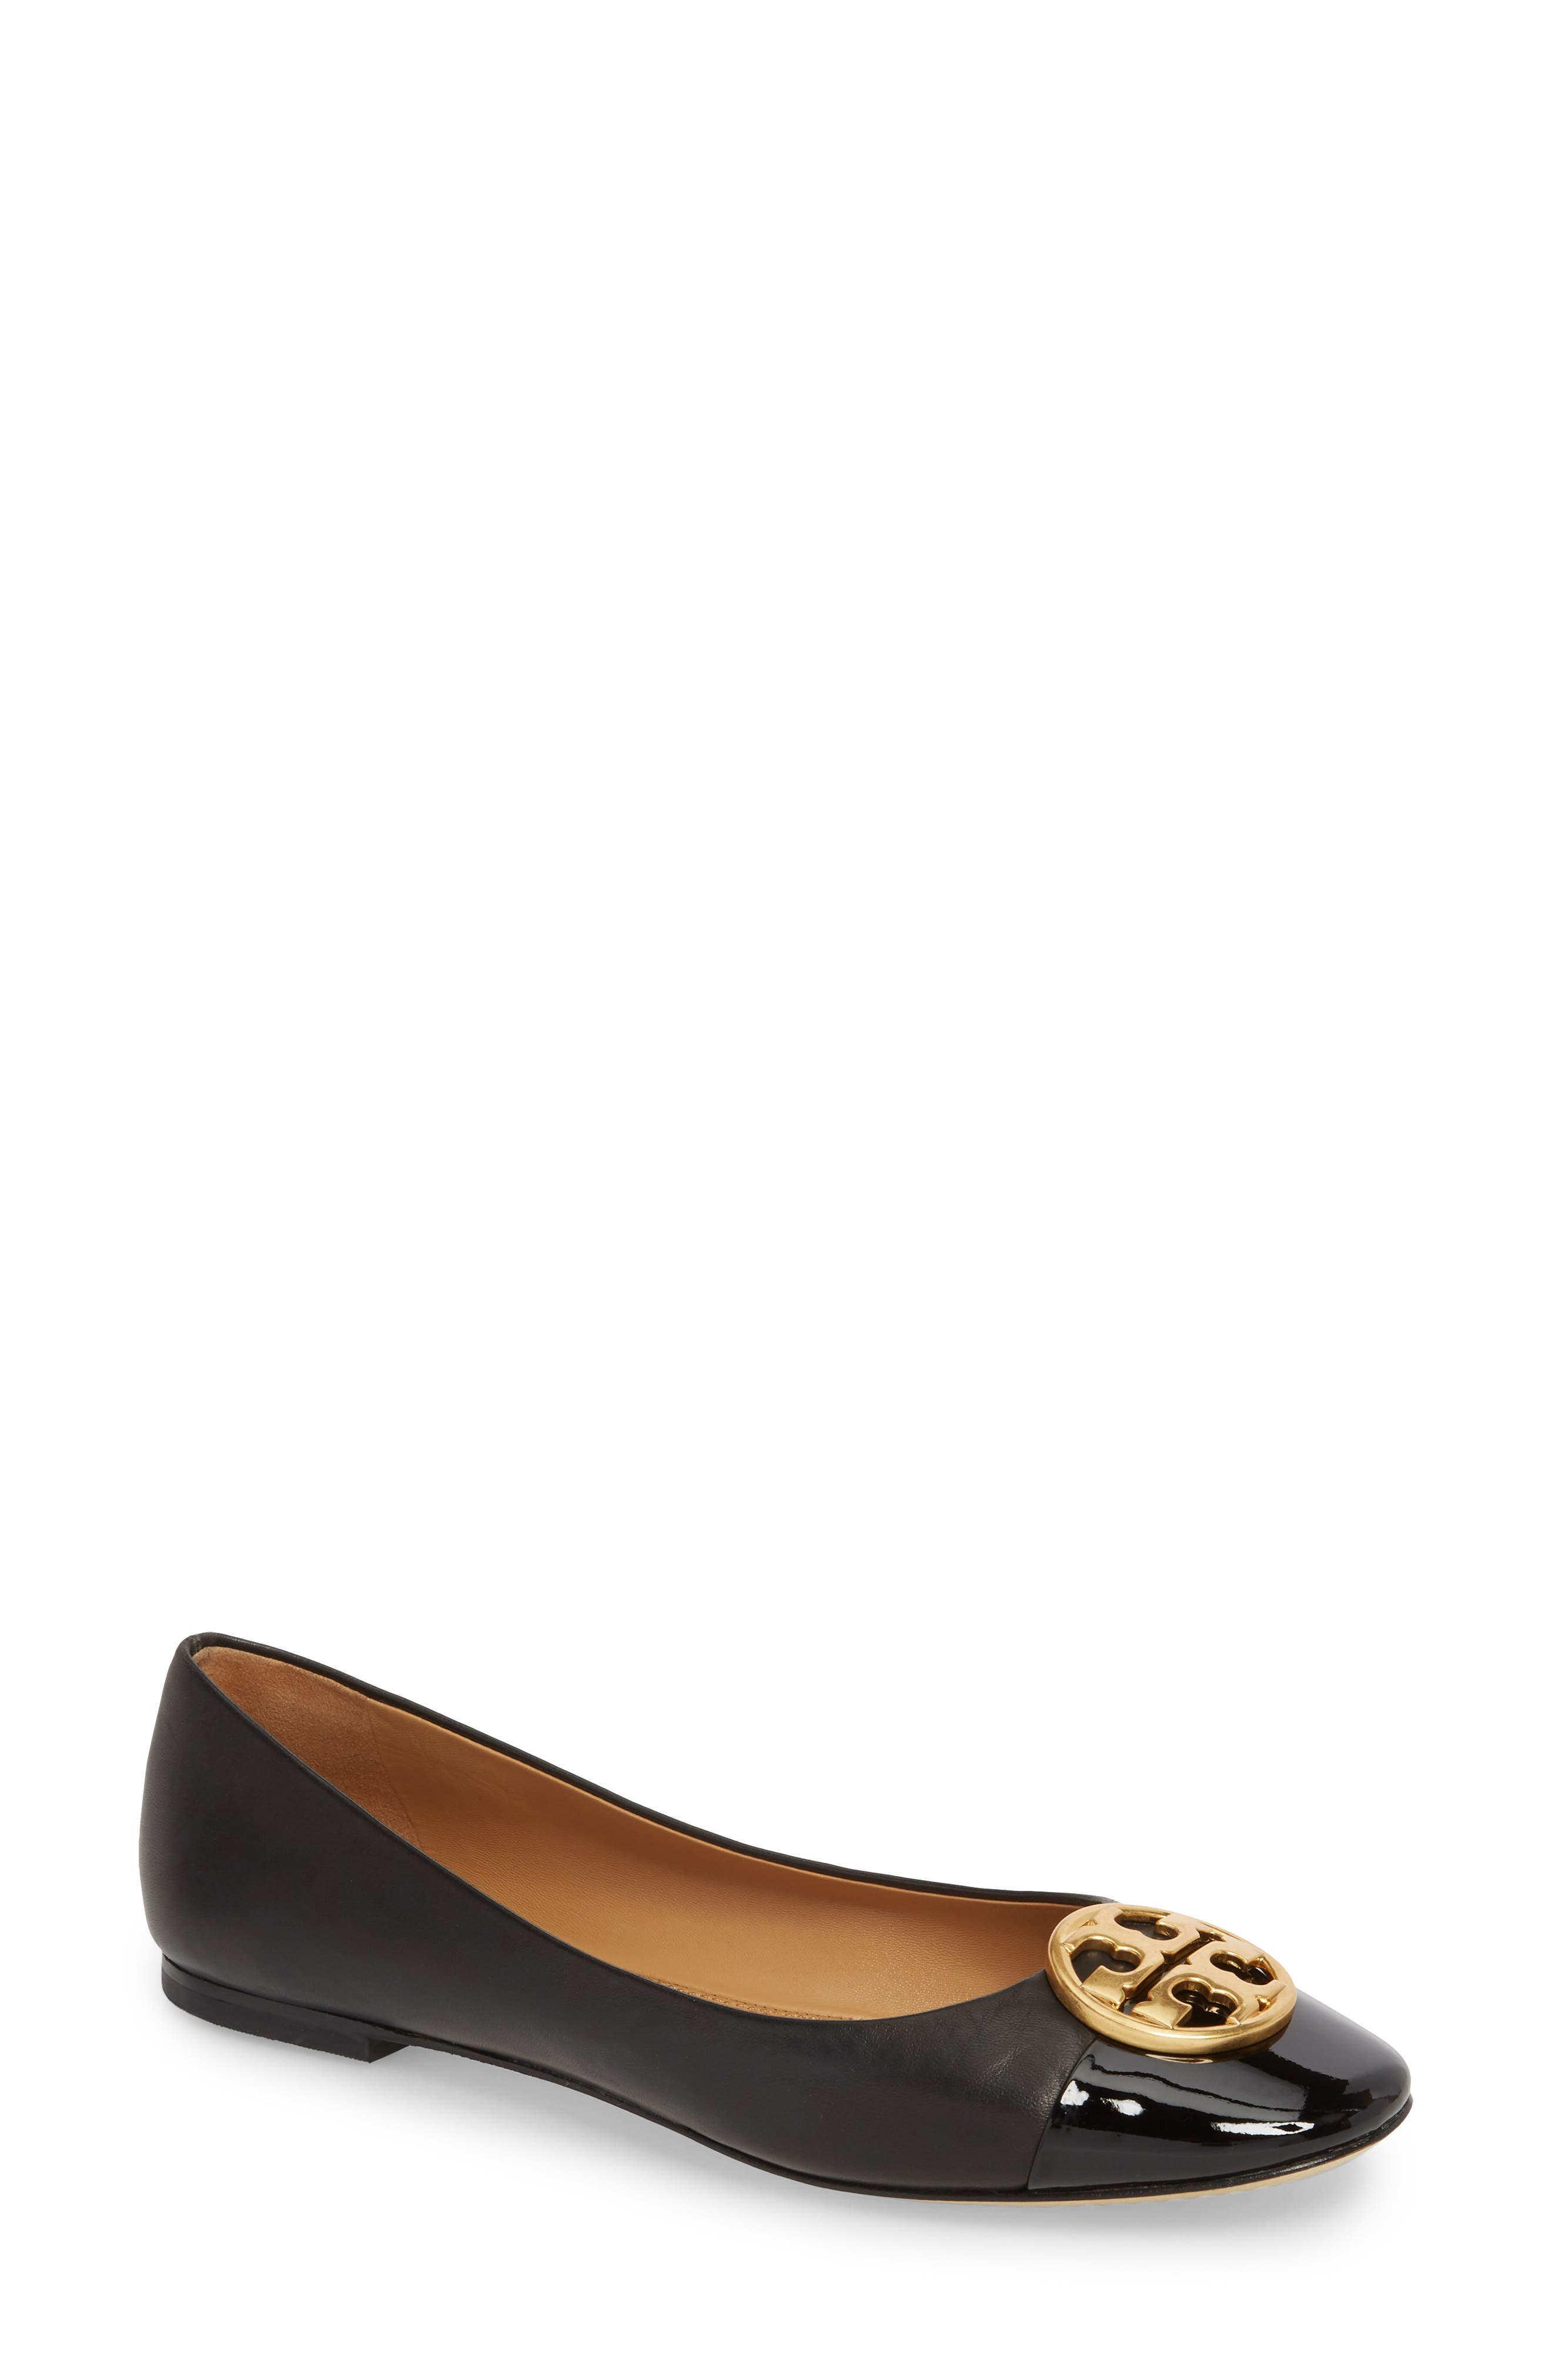 TORY BURCH Chelsea Cap Toe Ballet Flat, Main, color, BLACK